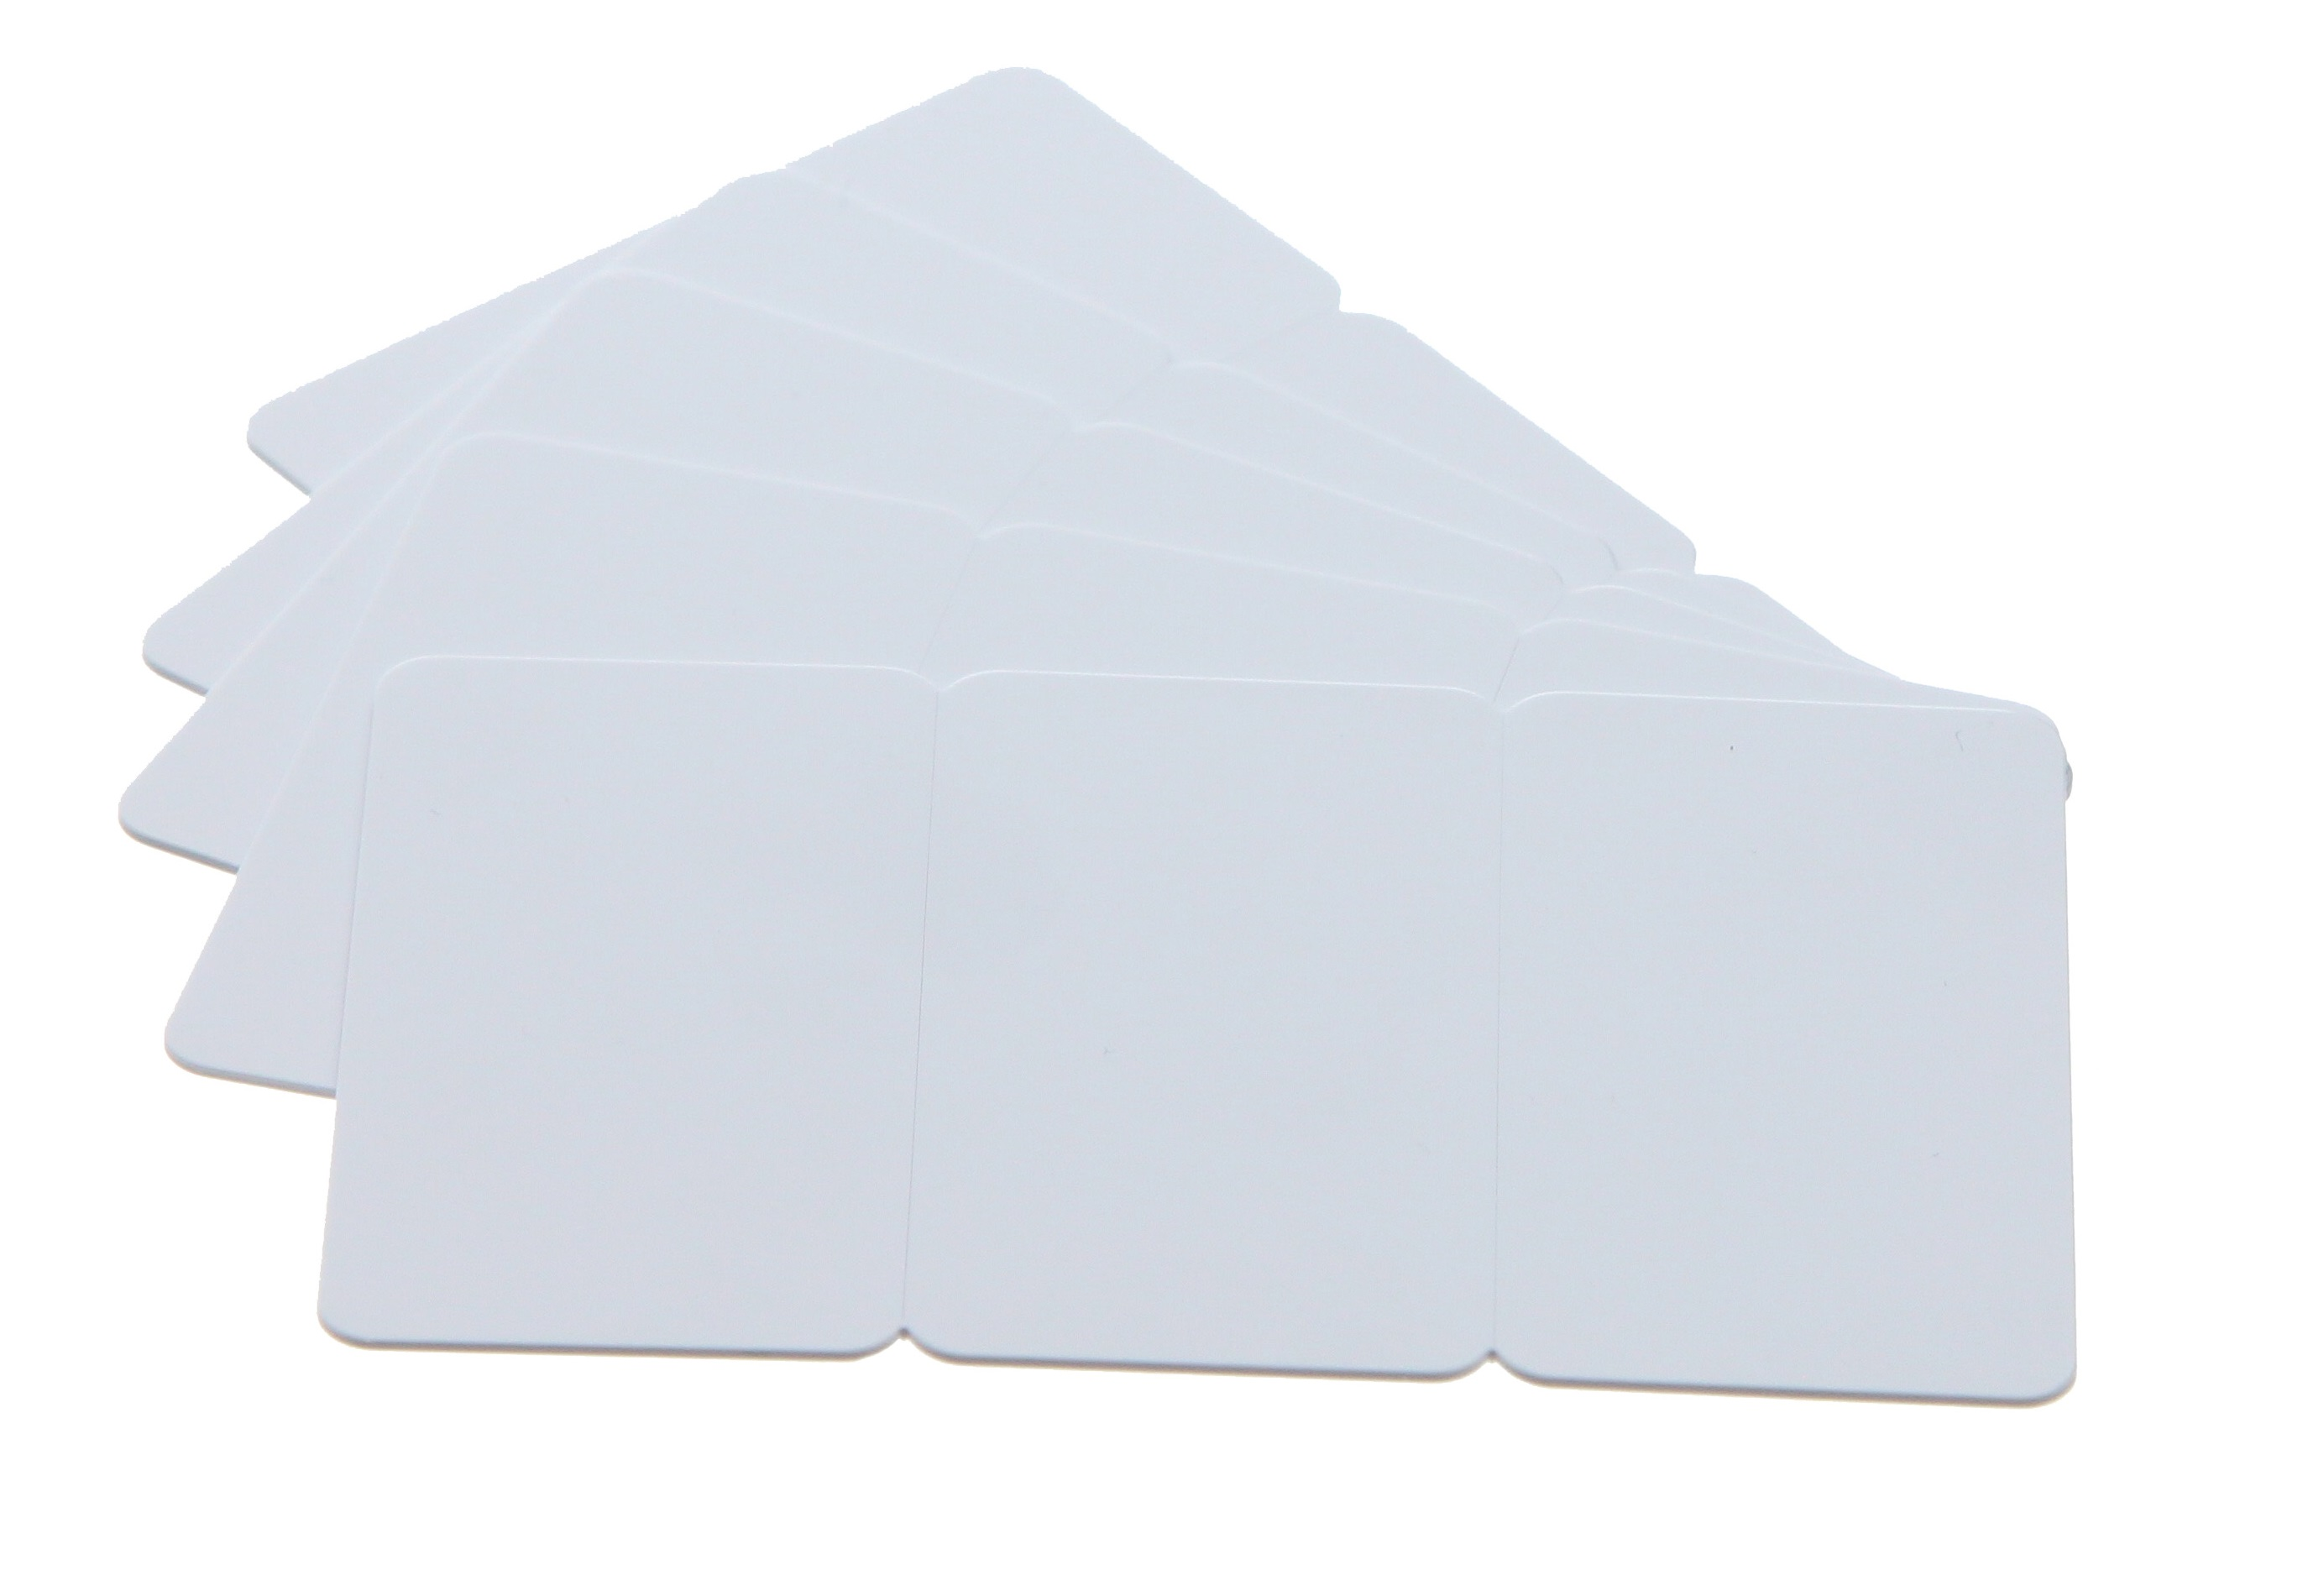 An image of 3TAG CARDS - 30MIL - White - Certified Food Safe - Pack of 100